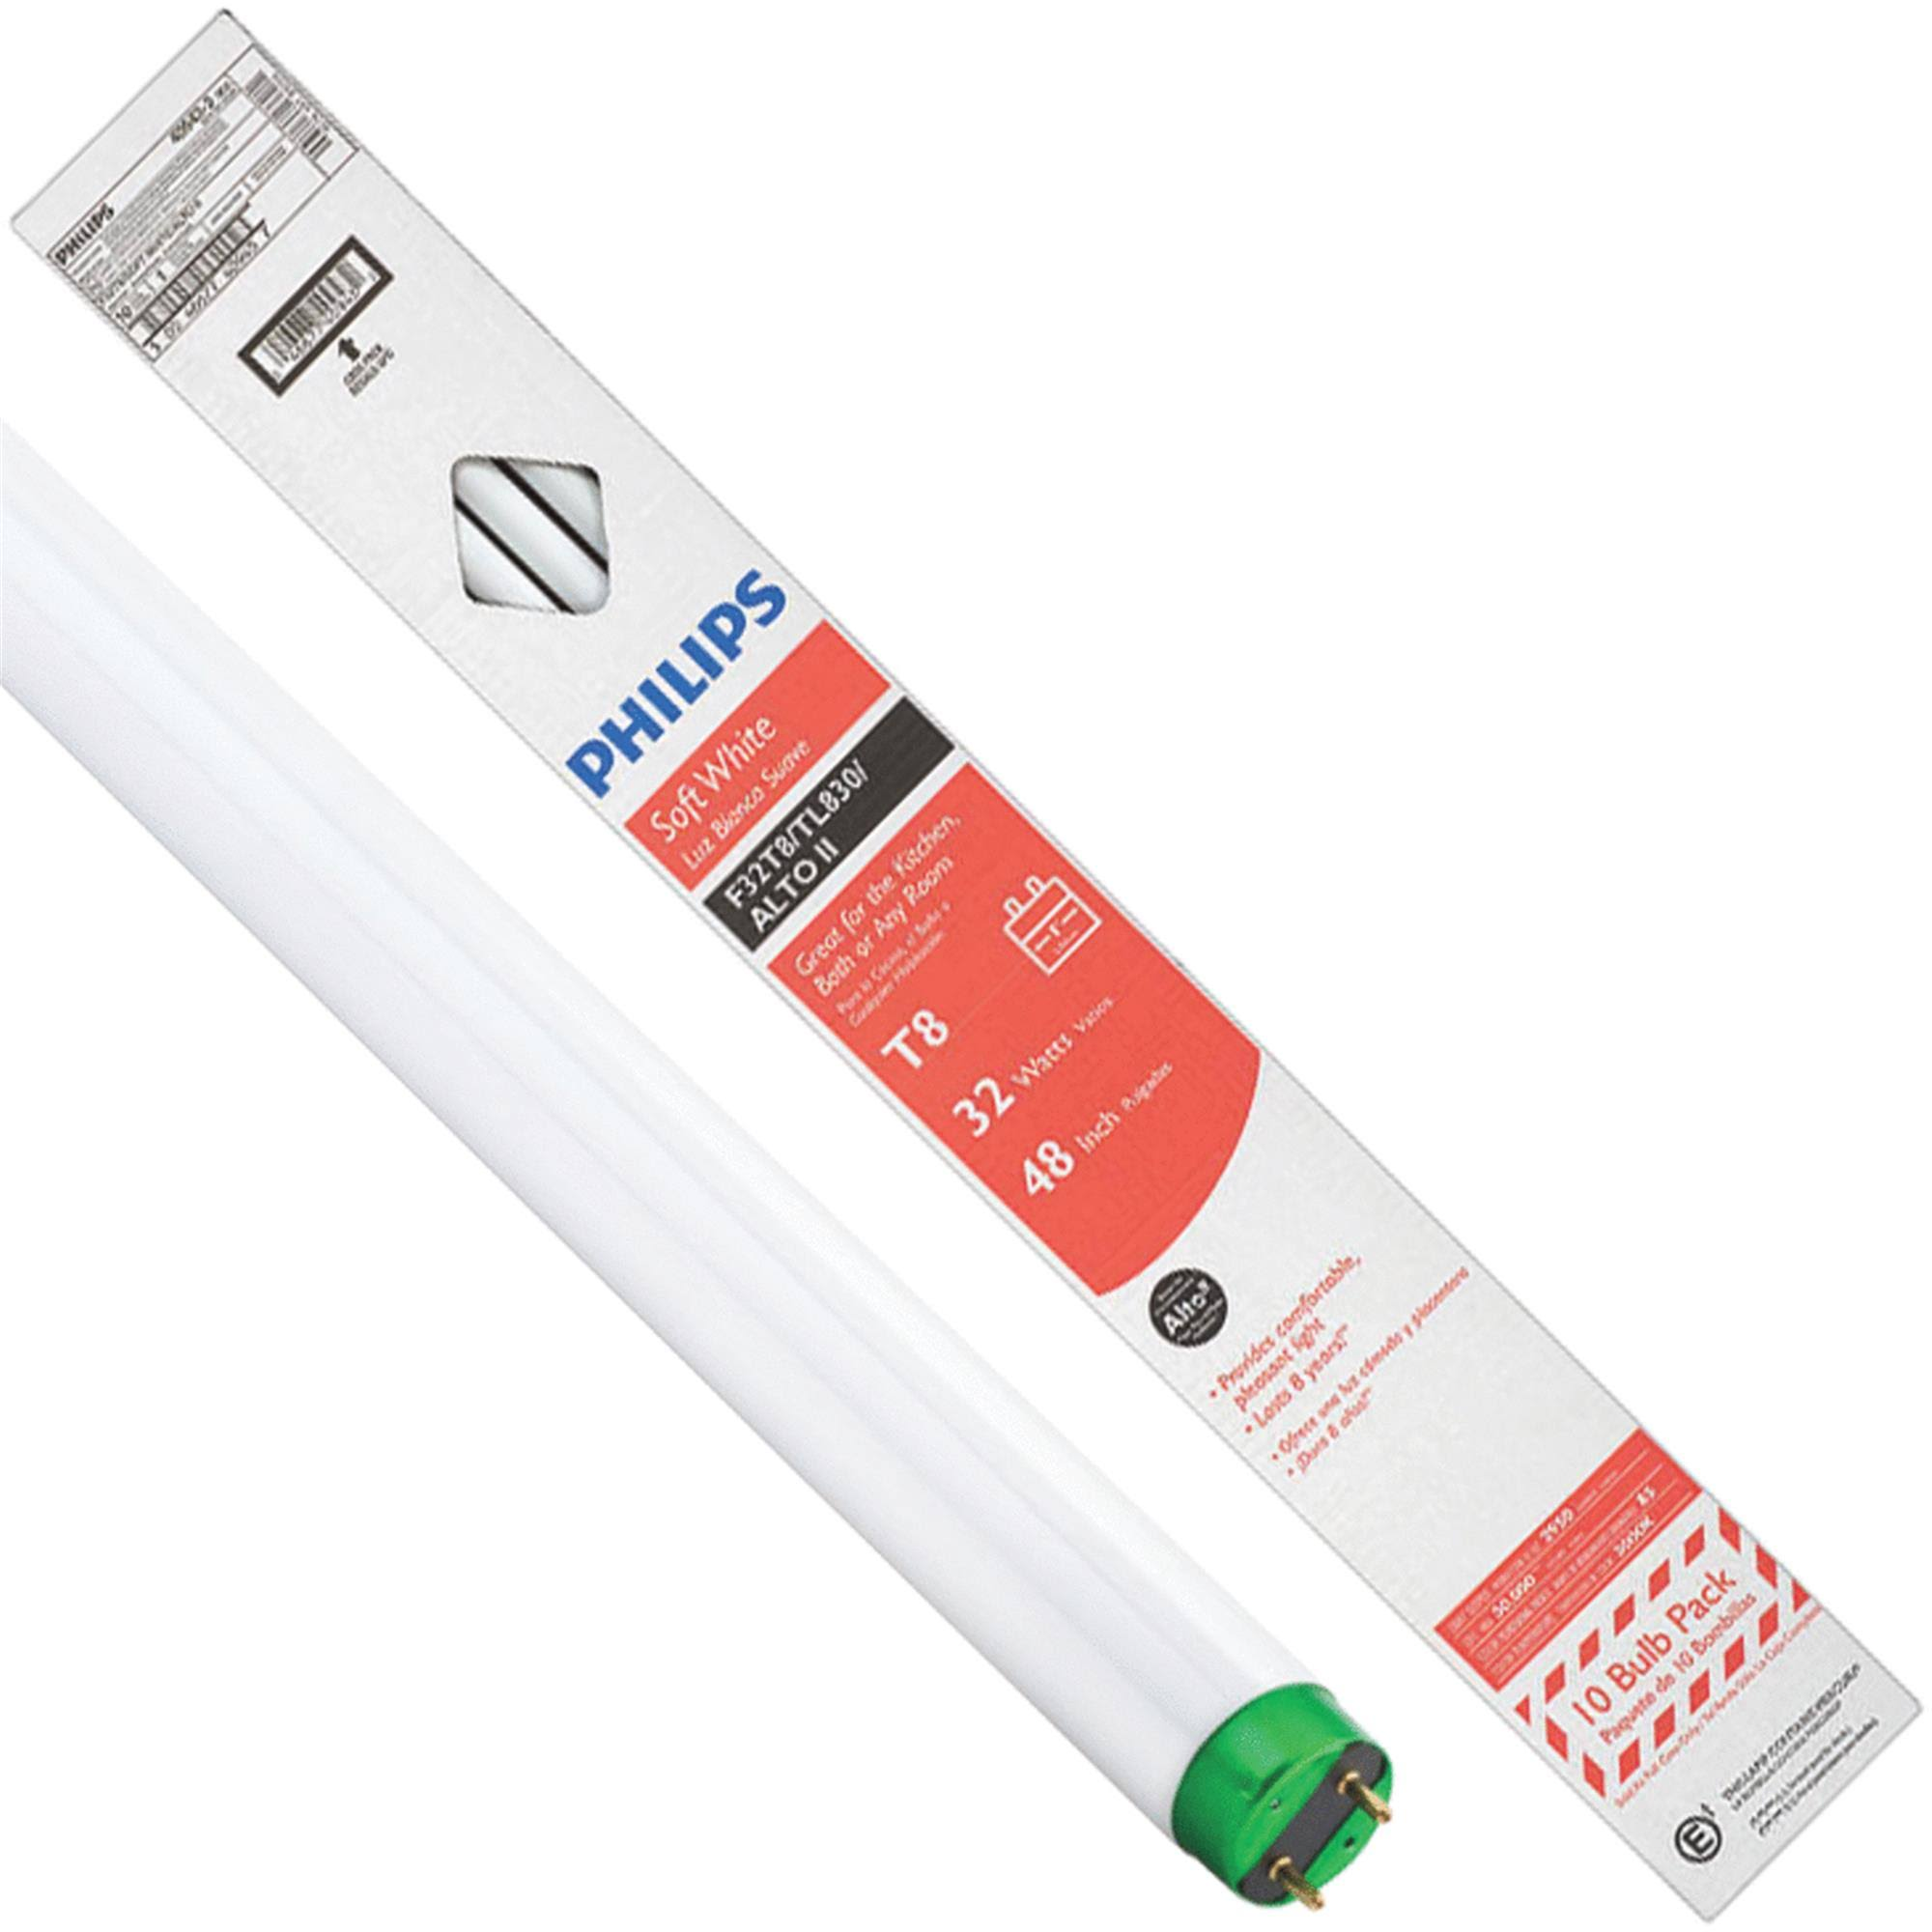 Philips T8 Medium Bi-Pin Fluorescent Tube Light Bulb 479683